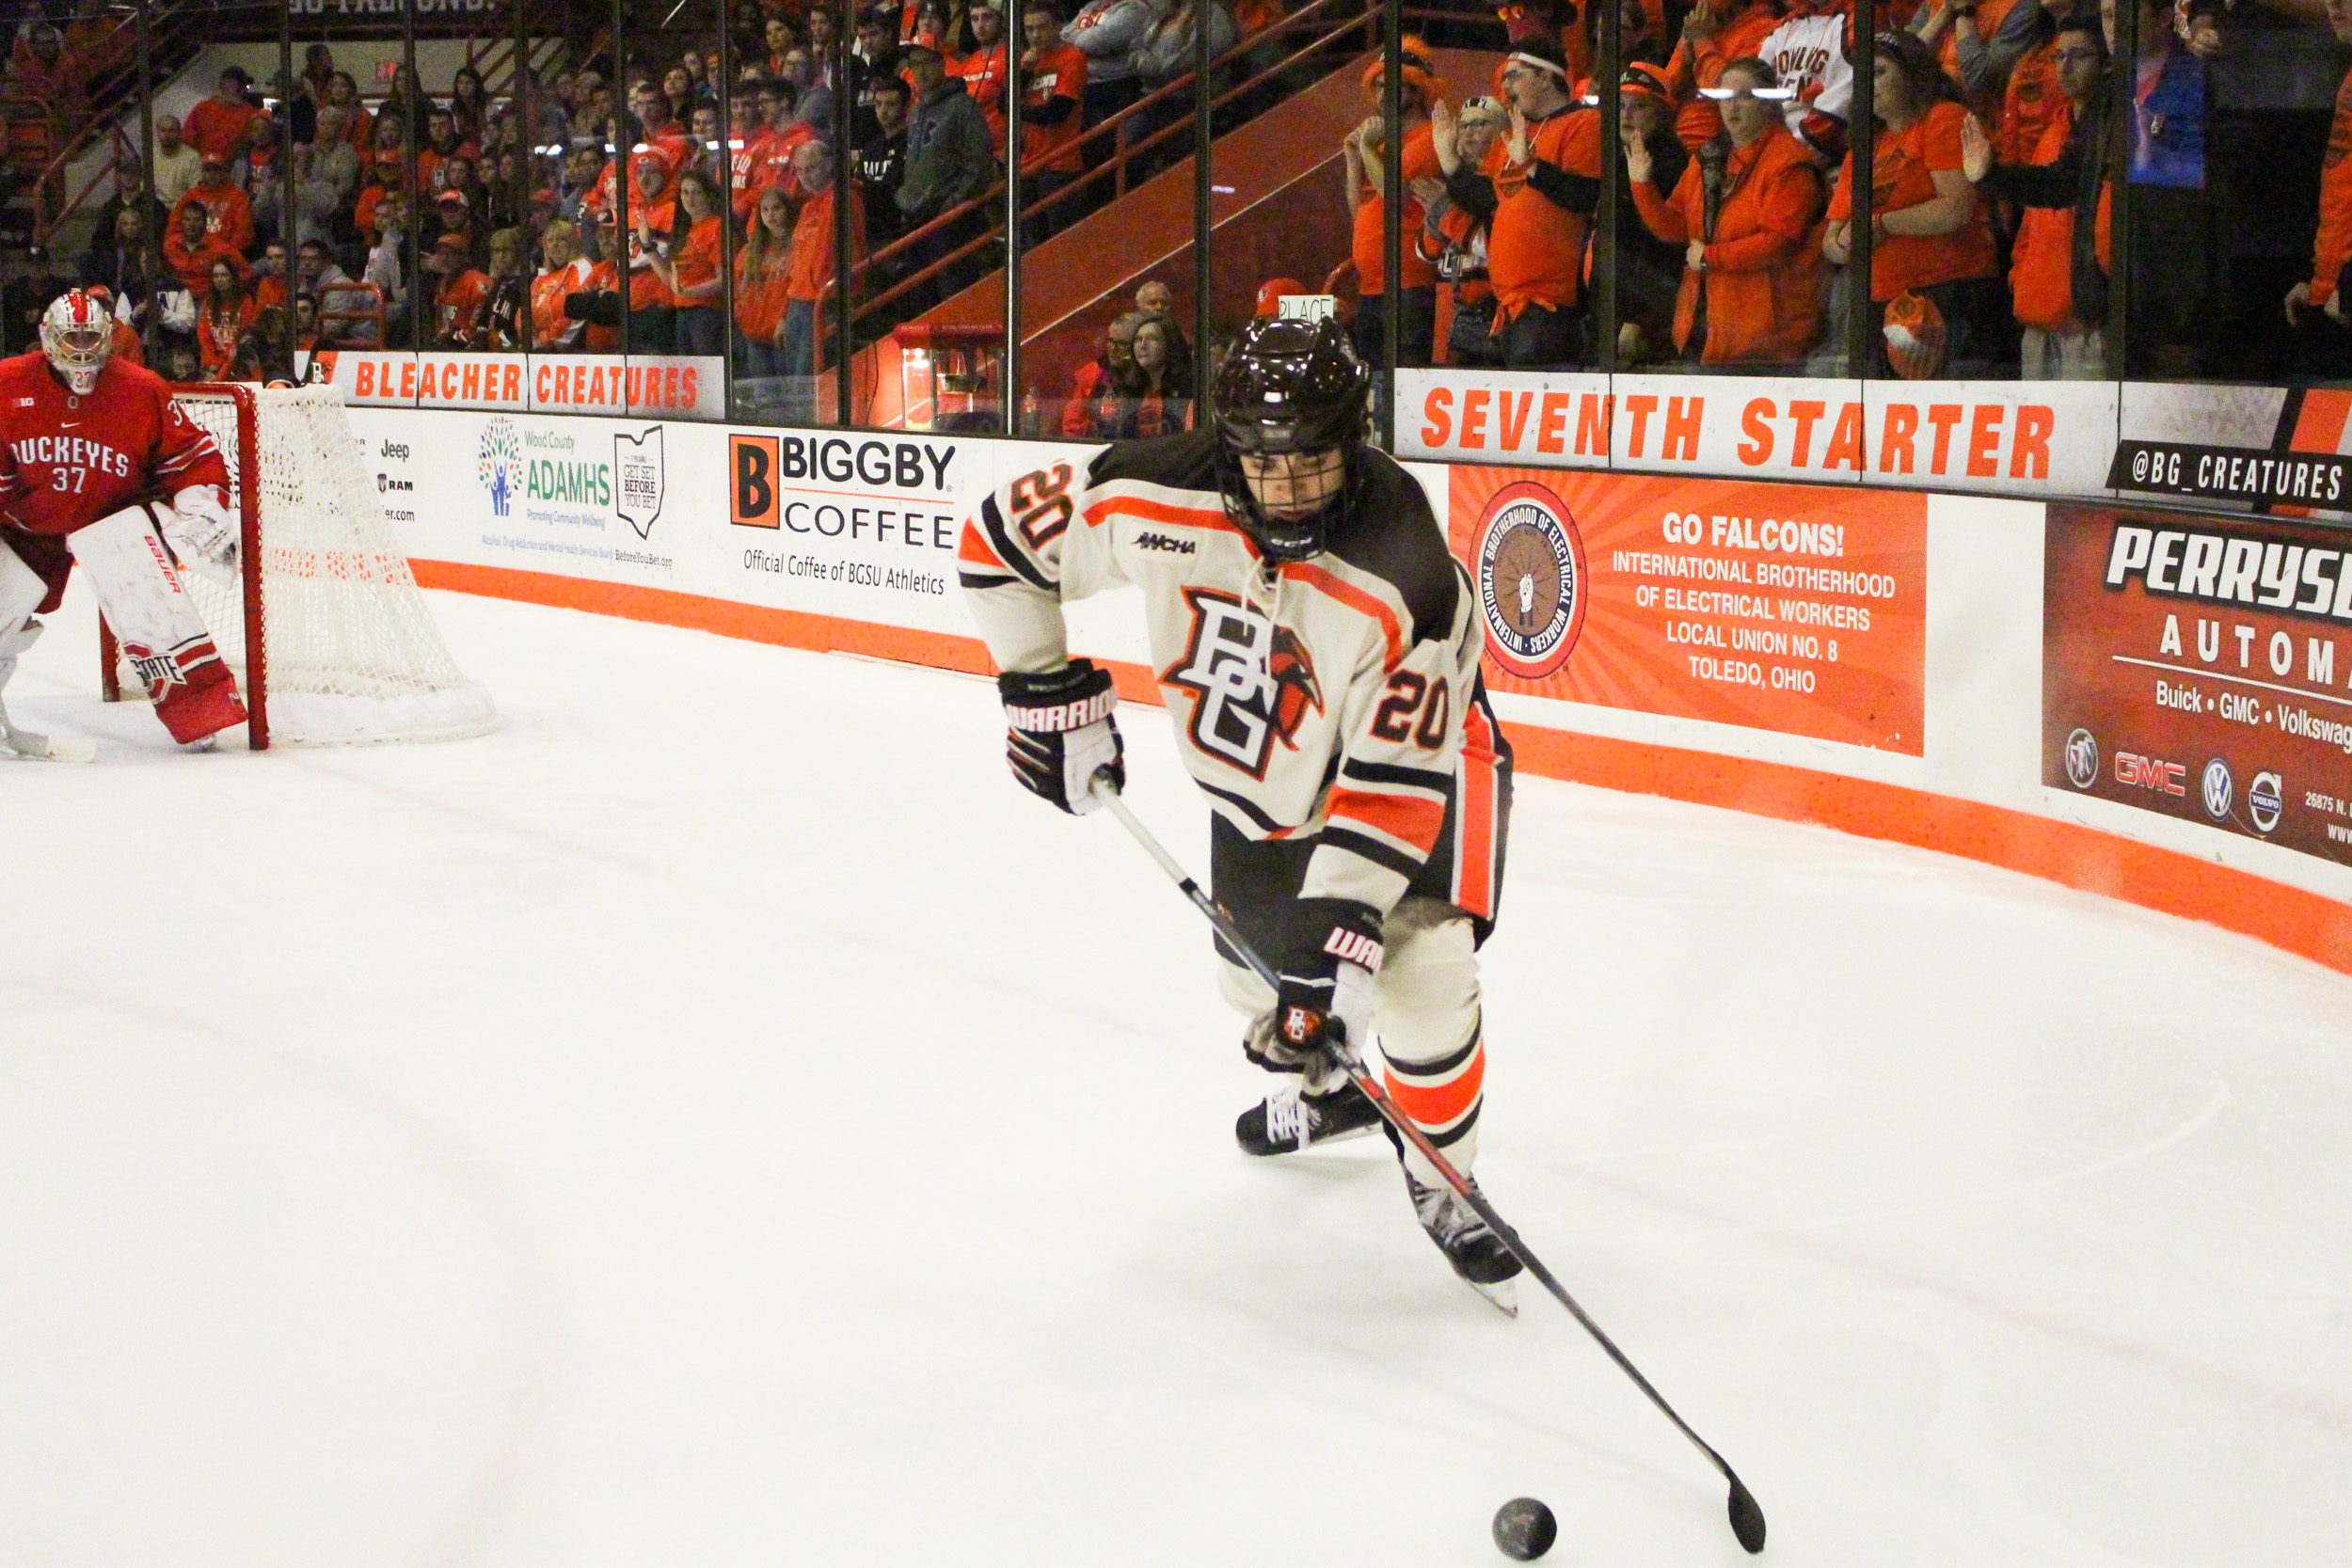 #15 Falcons and #4 Buckeyes skate to 2-2 tie